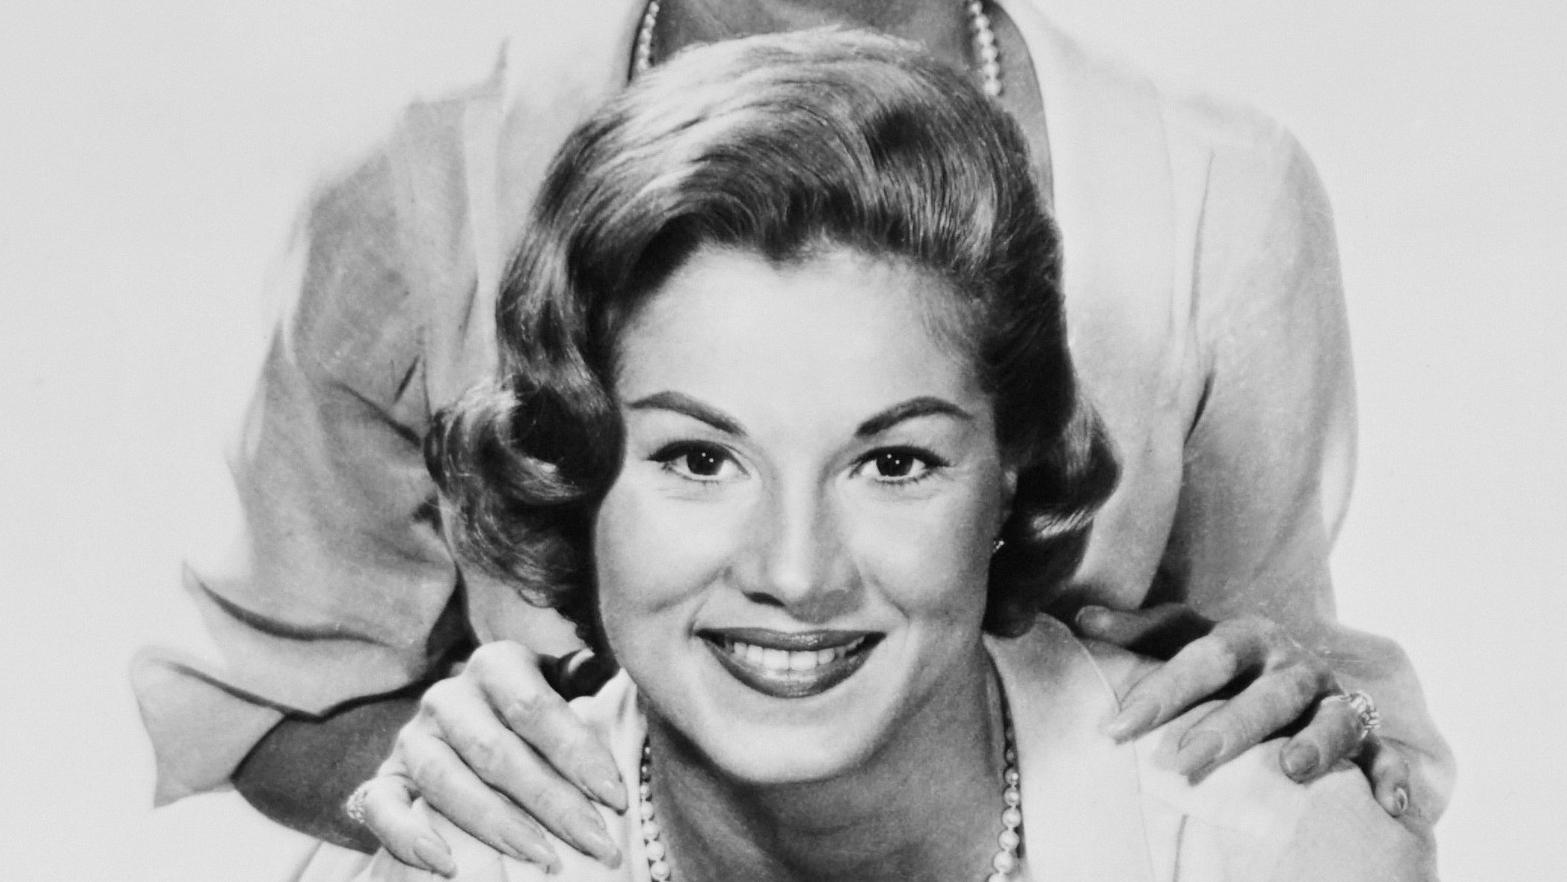 Phyllis McGuire, Lead Singer and Last Remaining Member of the McGuire Sisters, Dies at 89